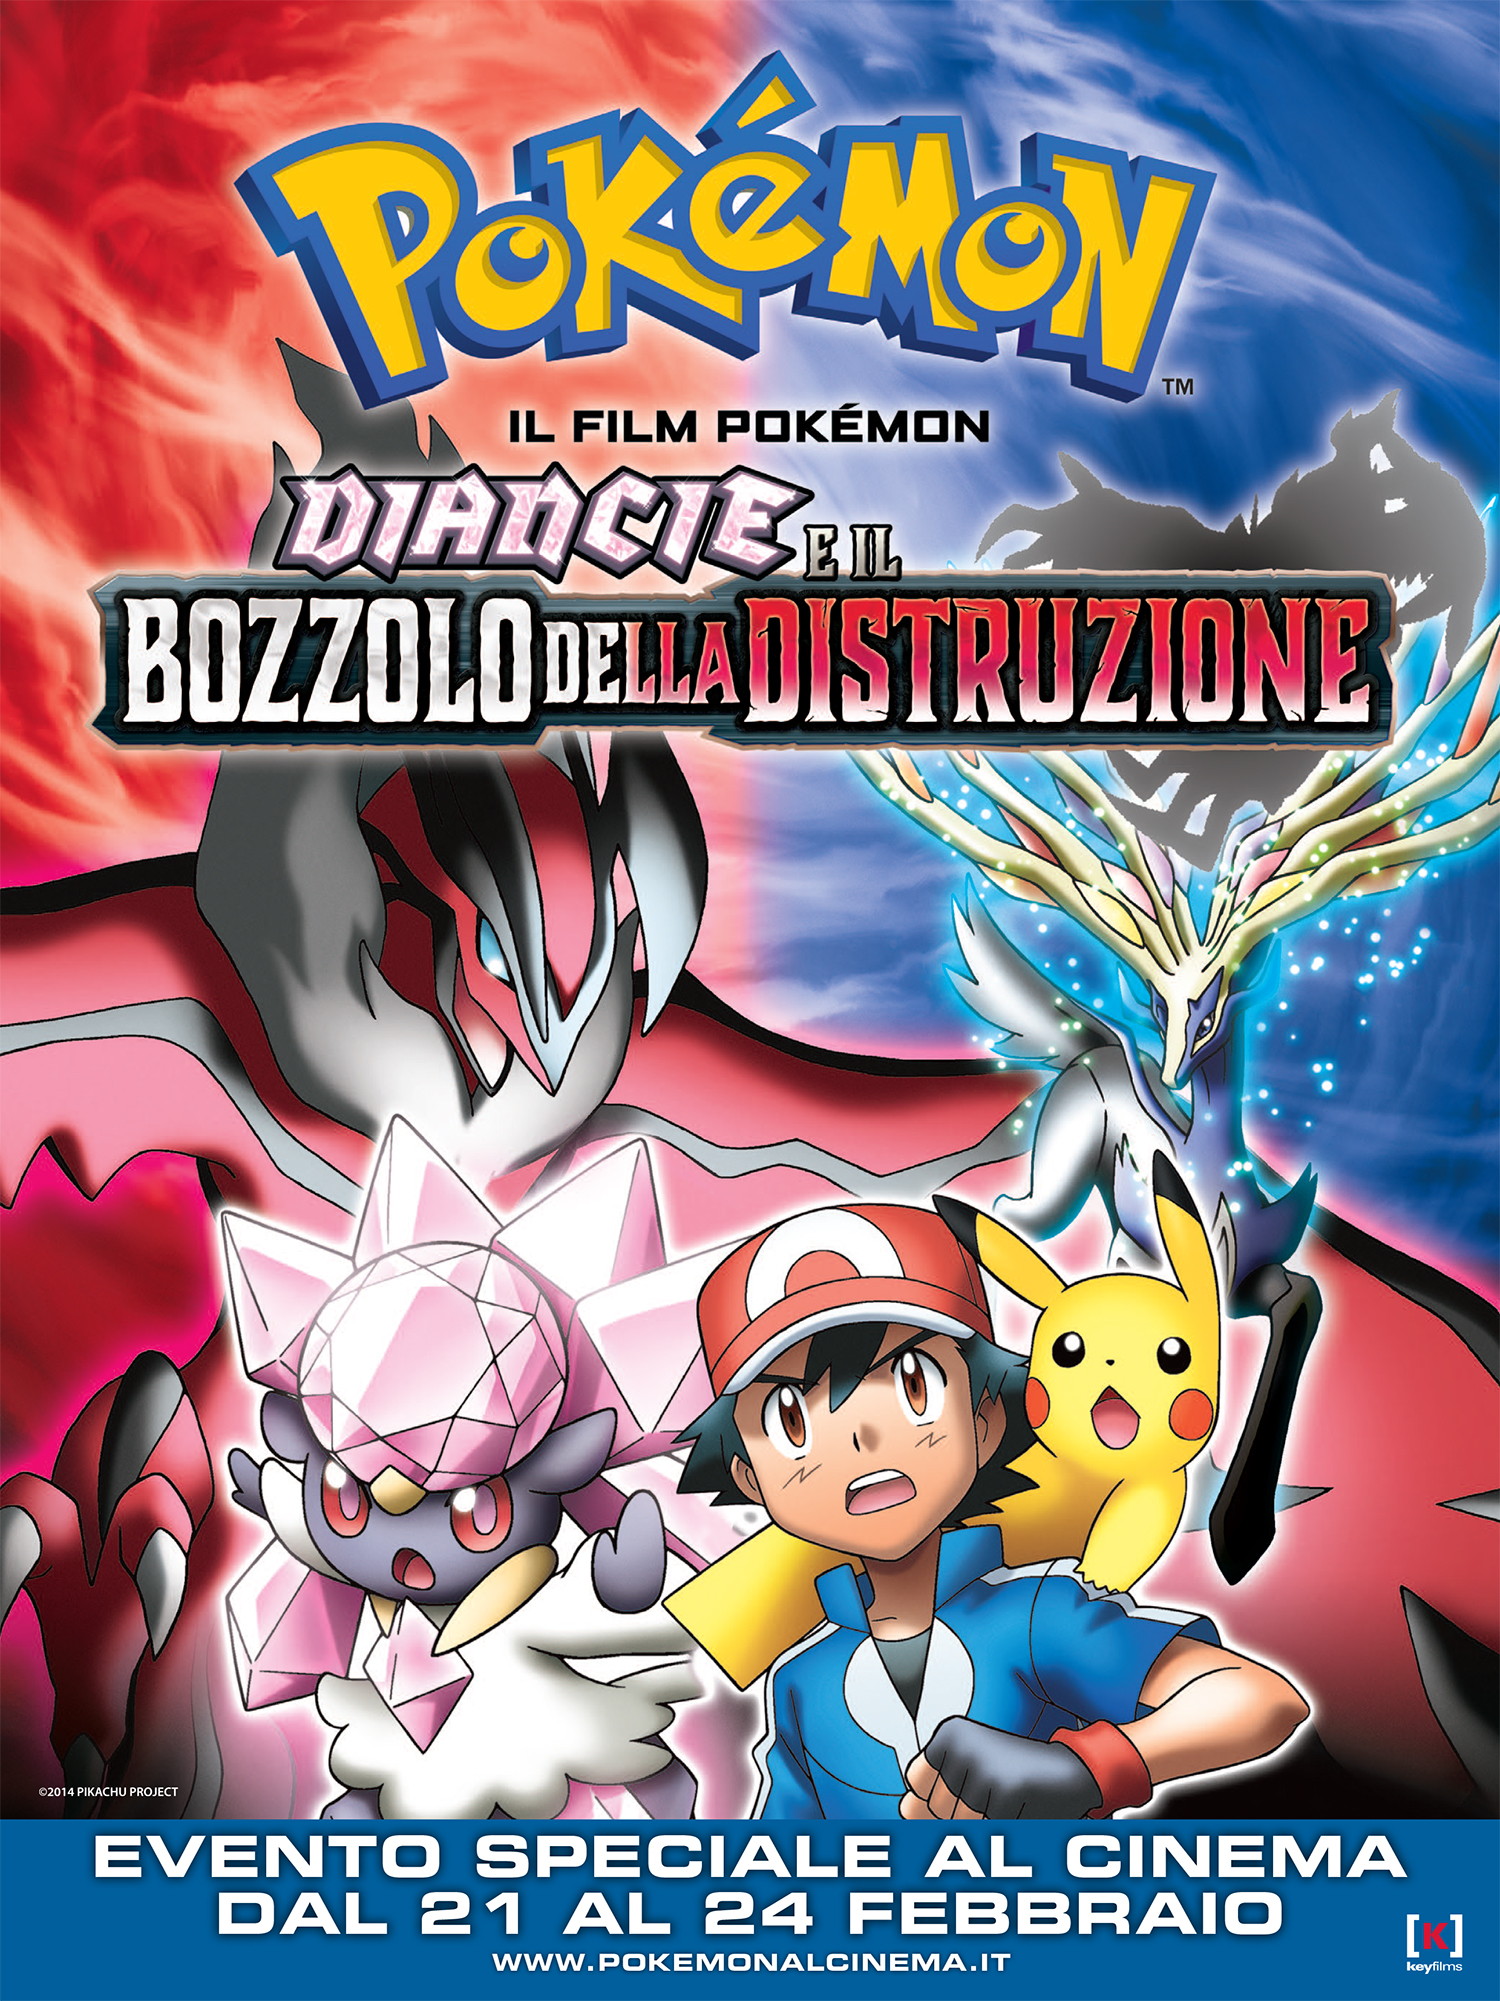 manifesto_cinema_film_17_diancie_bozzolo_distruzione_pokemontimes-it